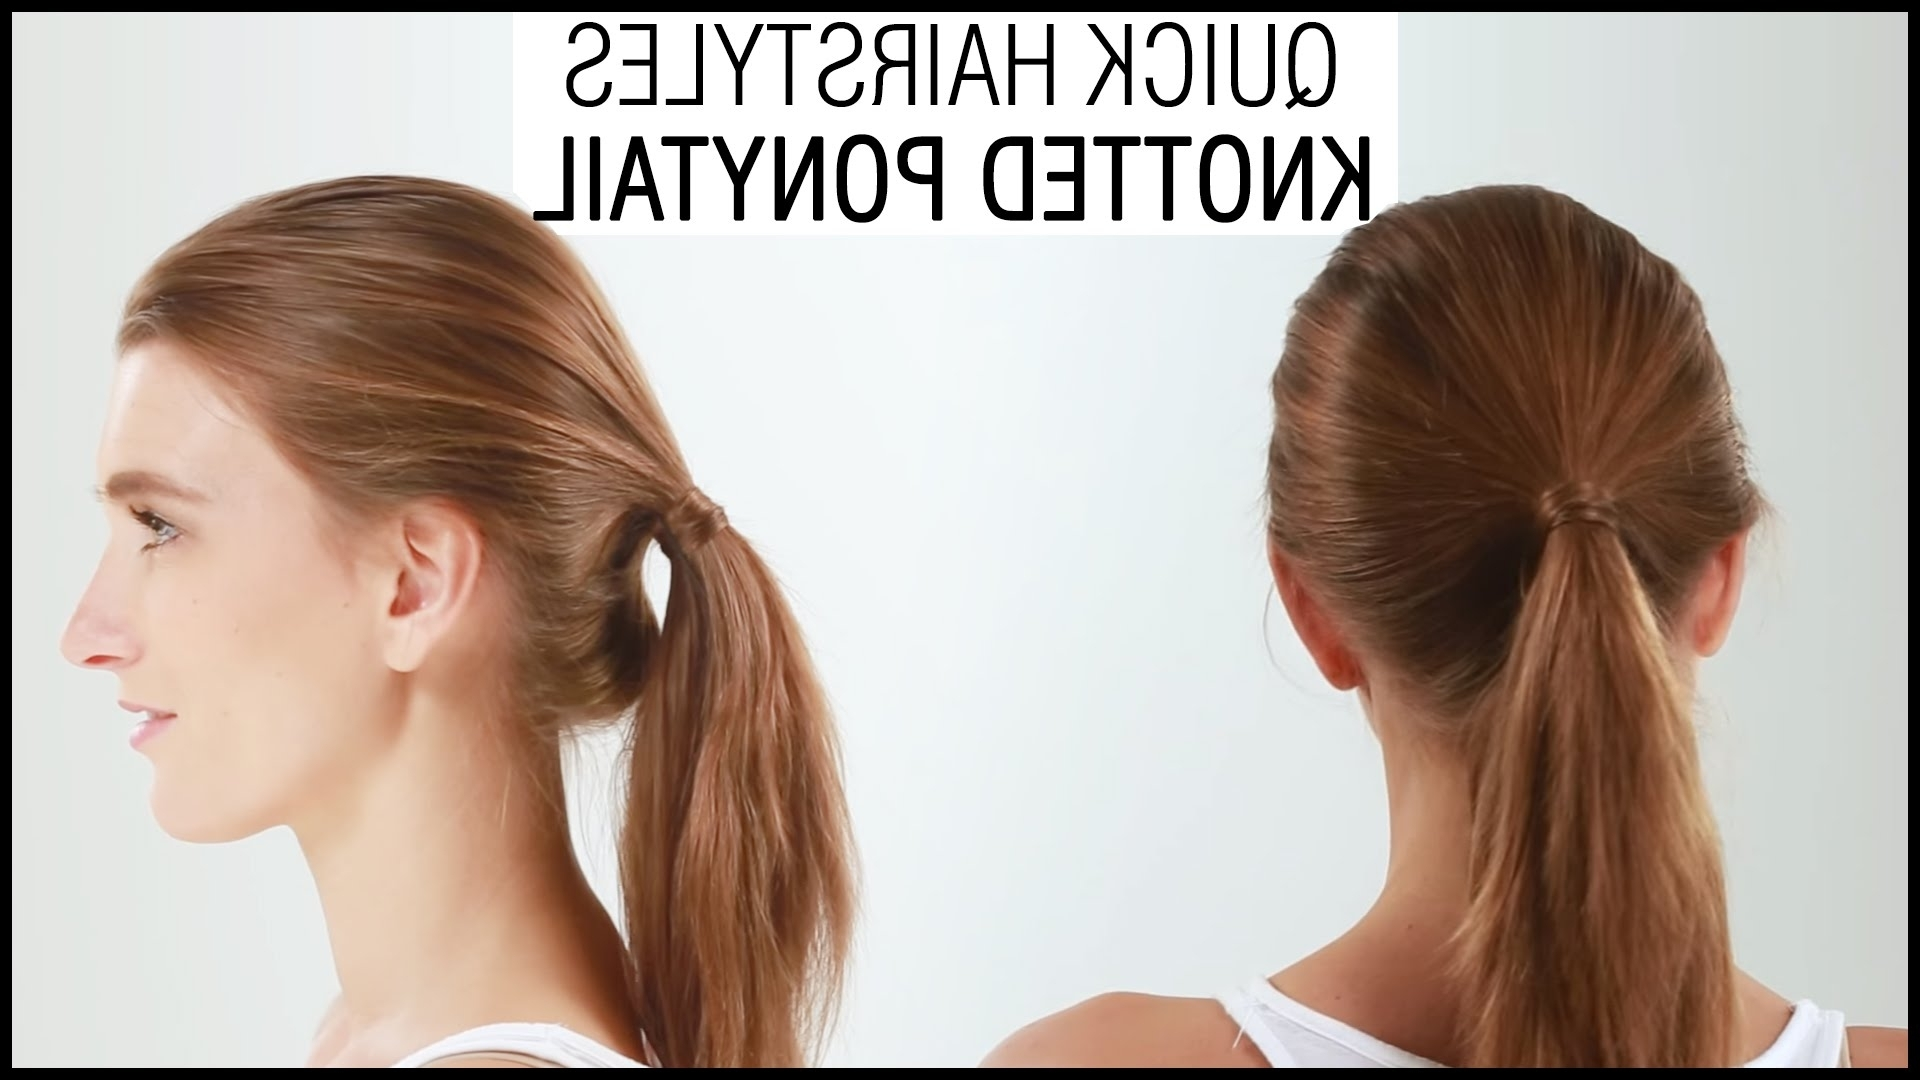 2017 Knotted Ponytail Hairstyles Within Easy And Quick Hairstyle In 1 Minute – Knotted Ponytail Hairstyles (View 3 of 20)